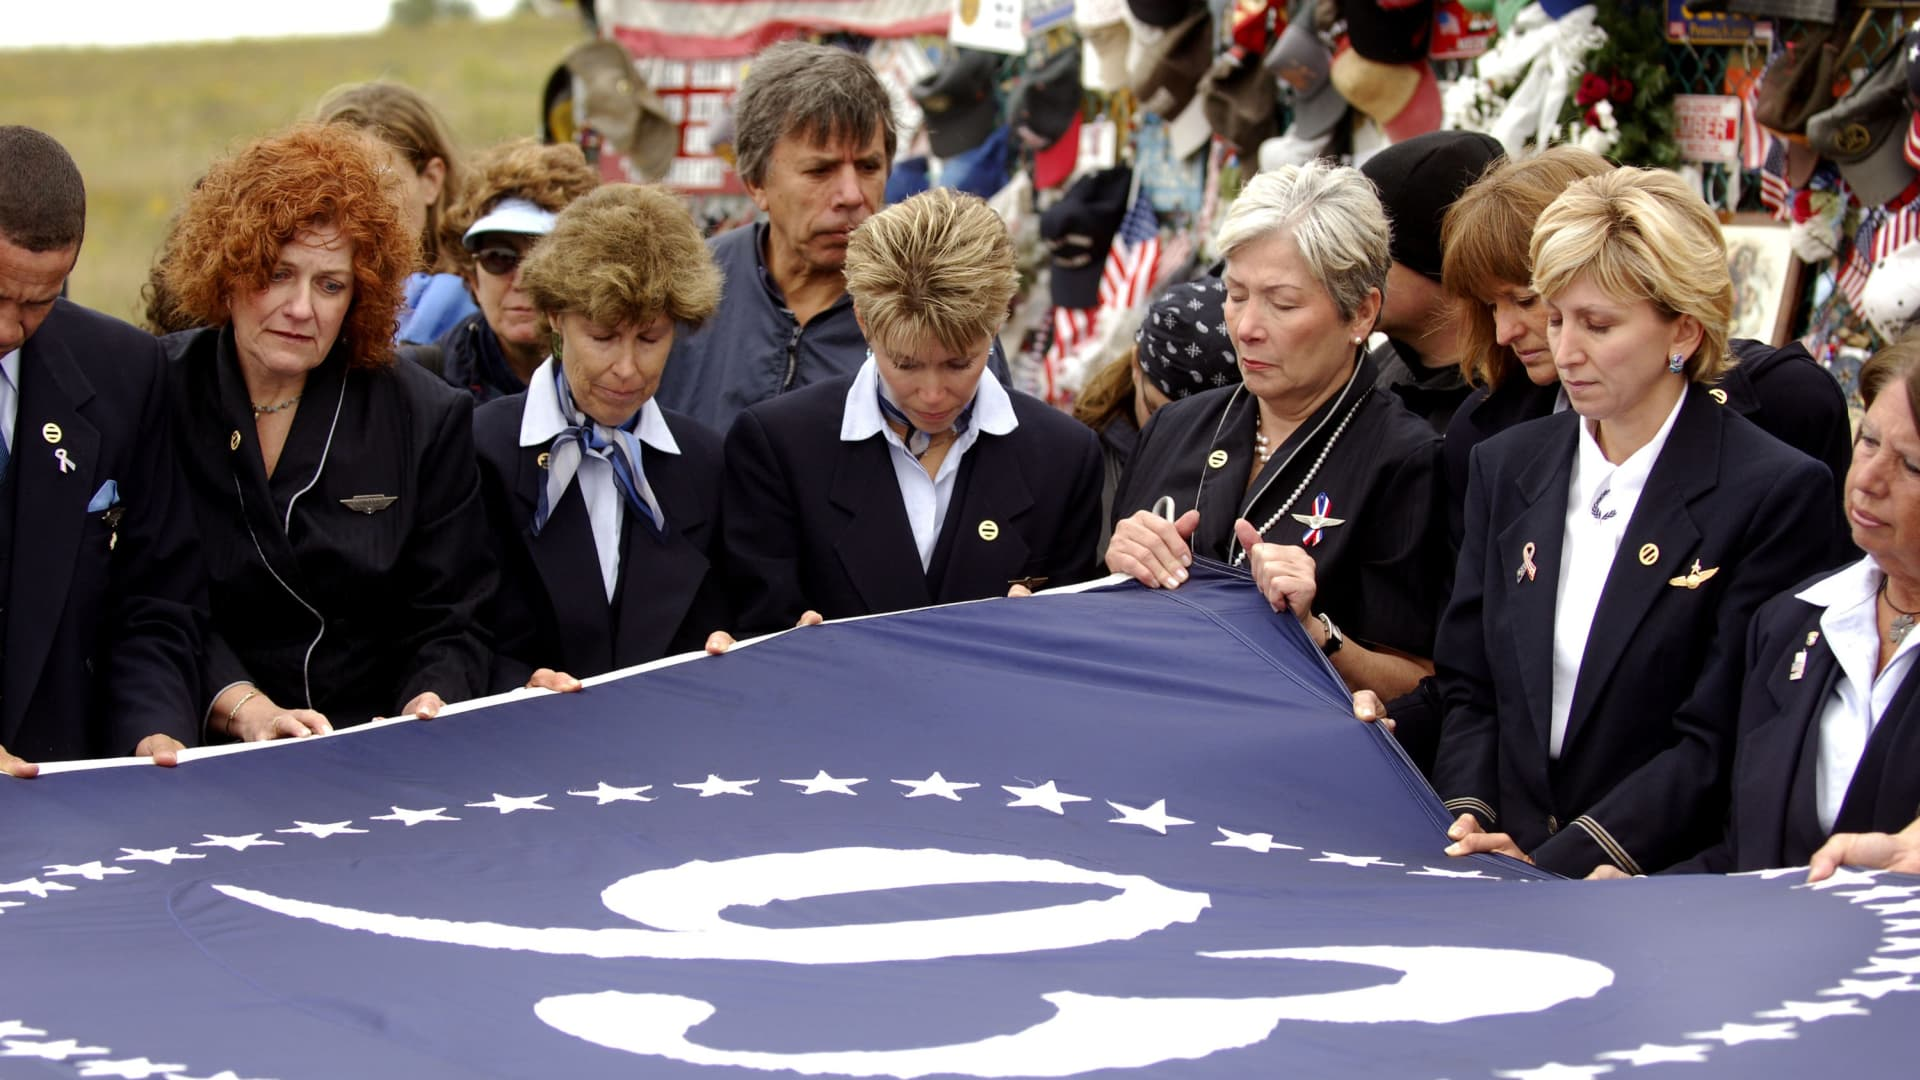 United Airlines flight attendants unfold a flag at a memorial site on the 5th anniversary of the September 11, 2001 attacks, where United Flight 93 crashed into a field in Shanksville, Pennsylvania, September 11, 2006.